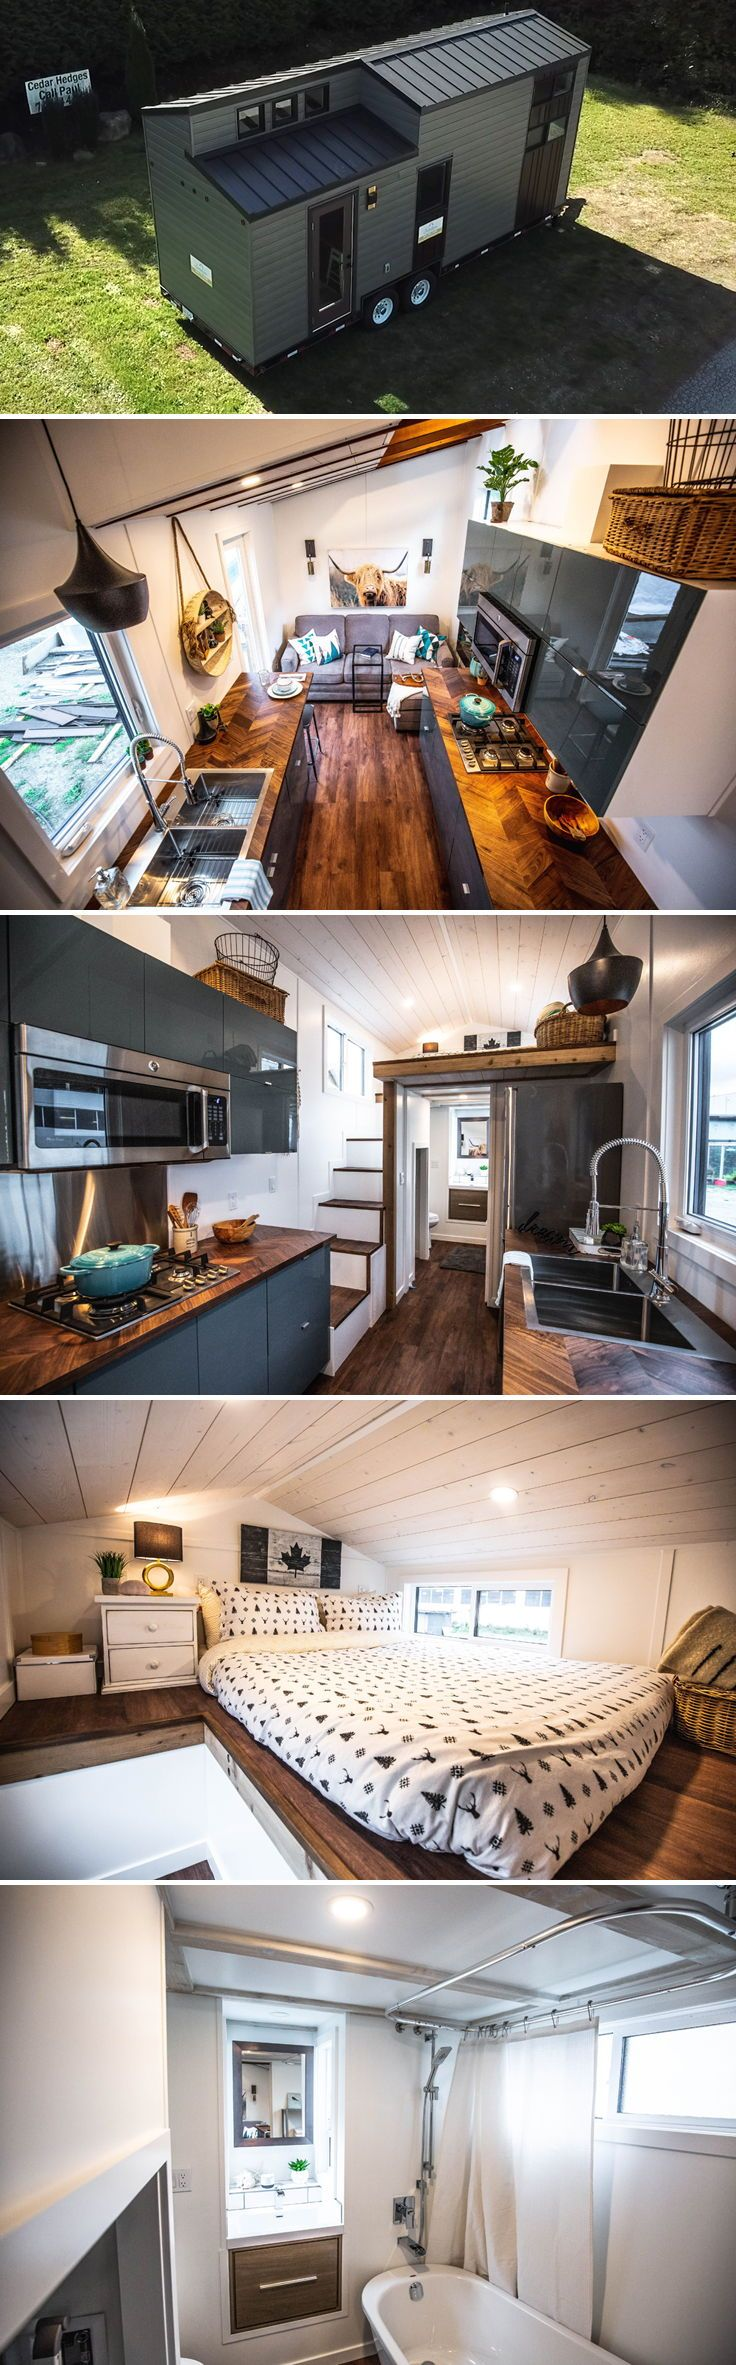 Coastal Escape by Sunshine Tiny Homes #tinyhome